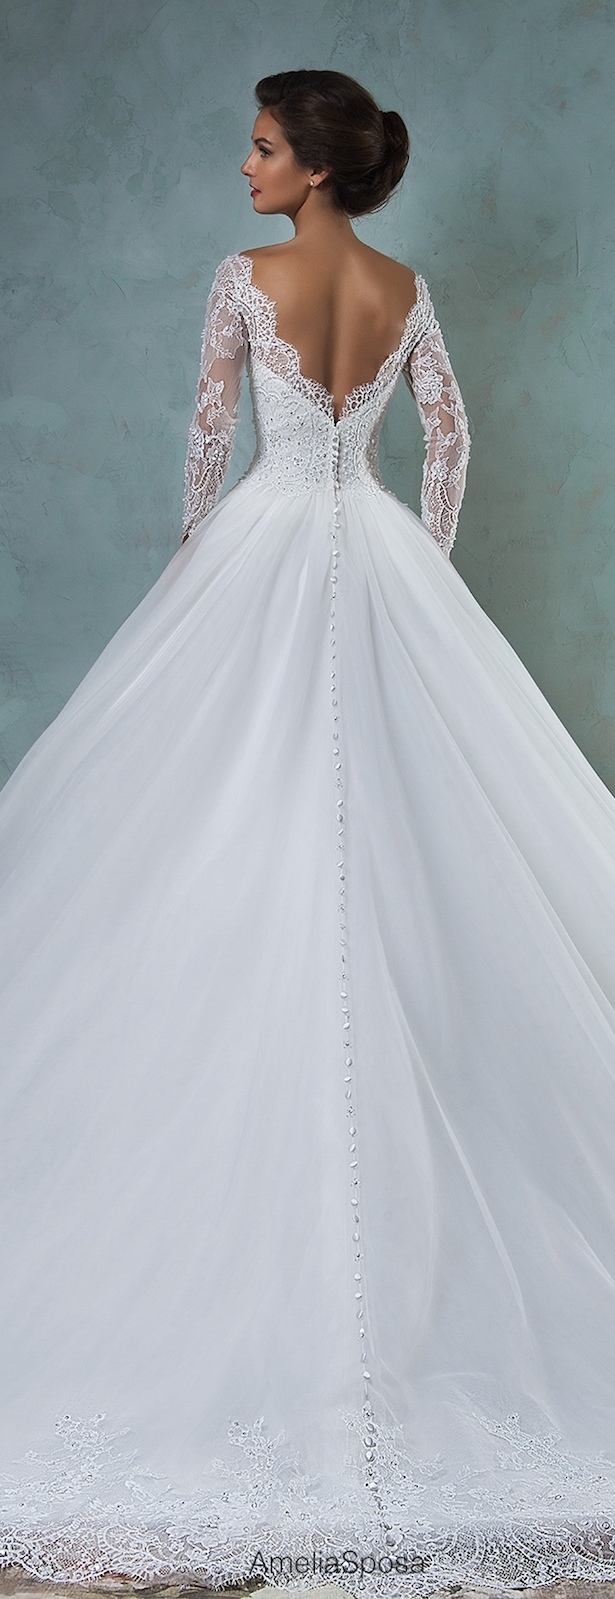 Amelia sposa 2016 wedding dresses part 2 belle the for Belle style wedding dress